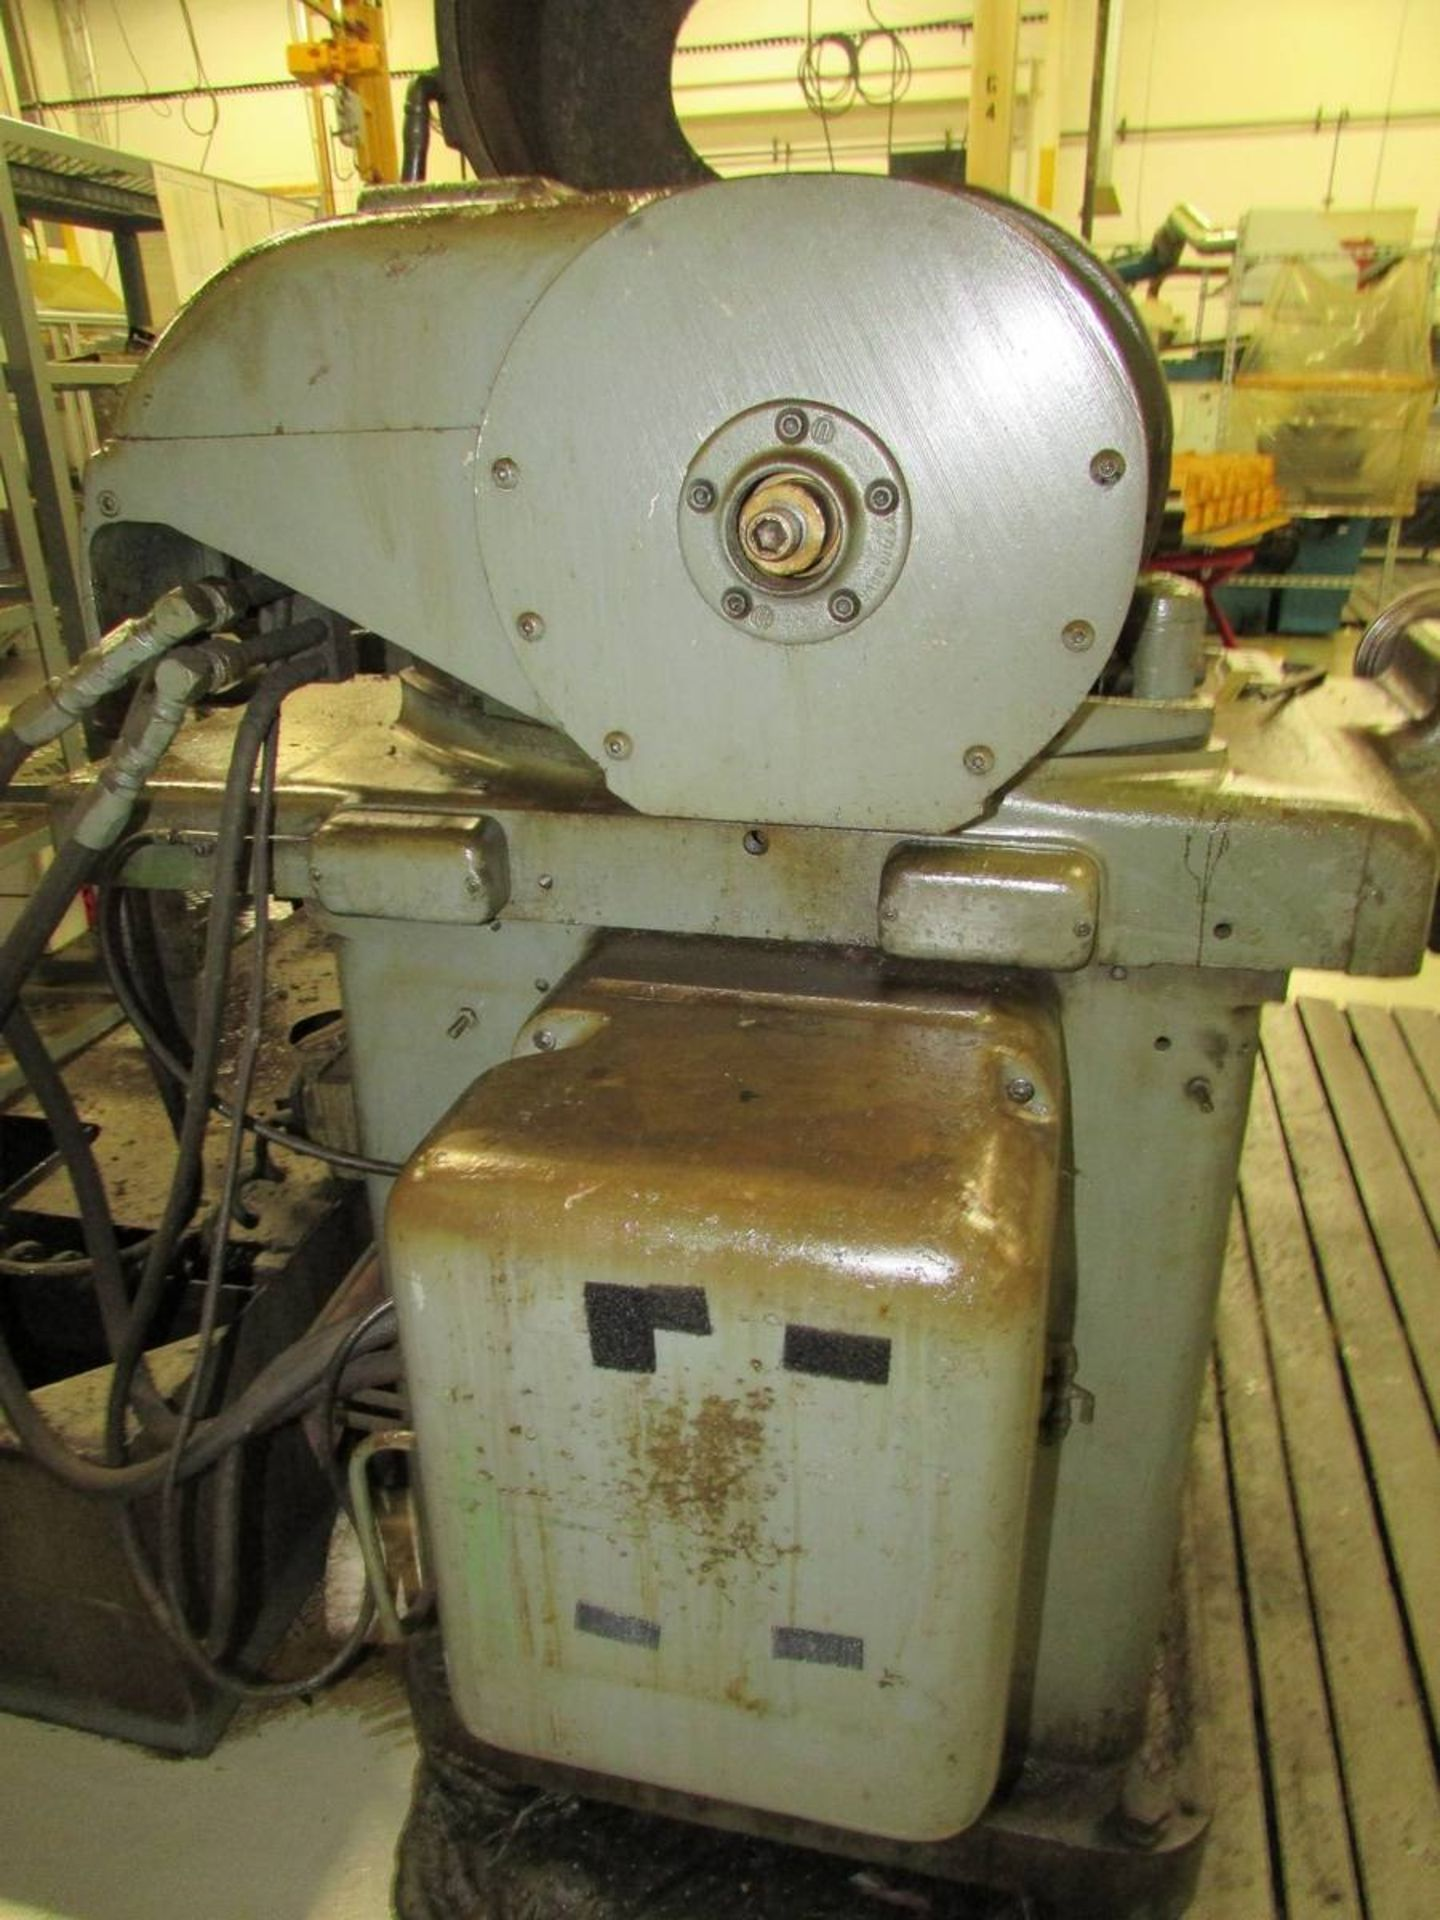 1981 Bryant 1116 ID Cylindrical Grinder - Image 14 of 20